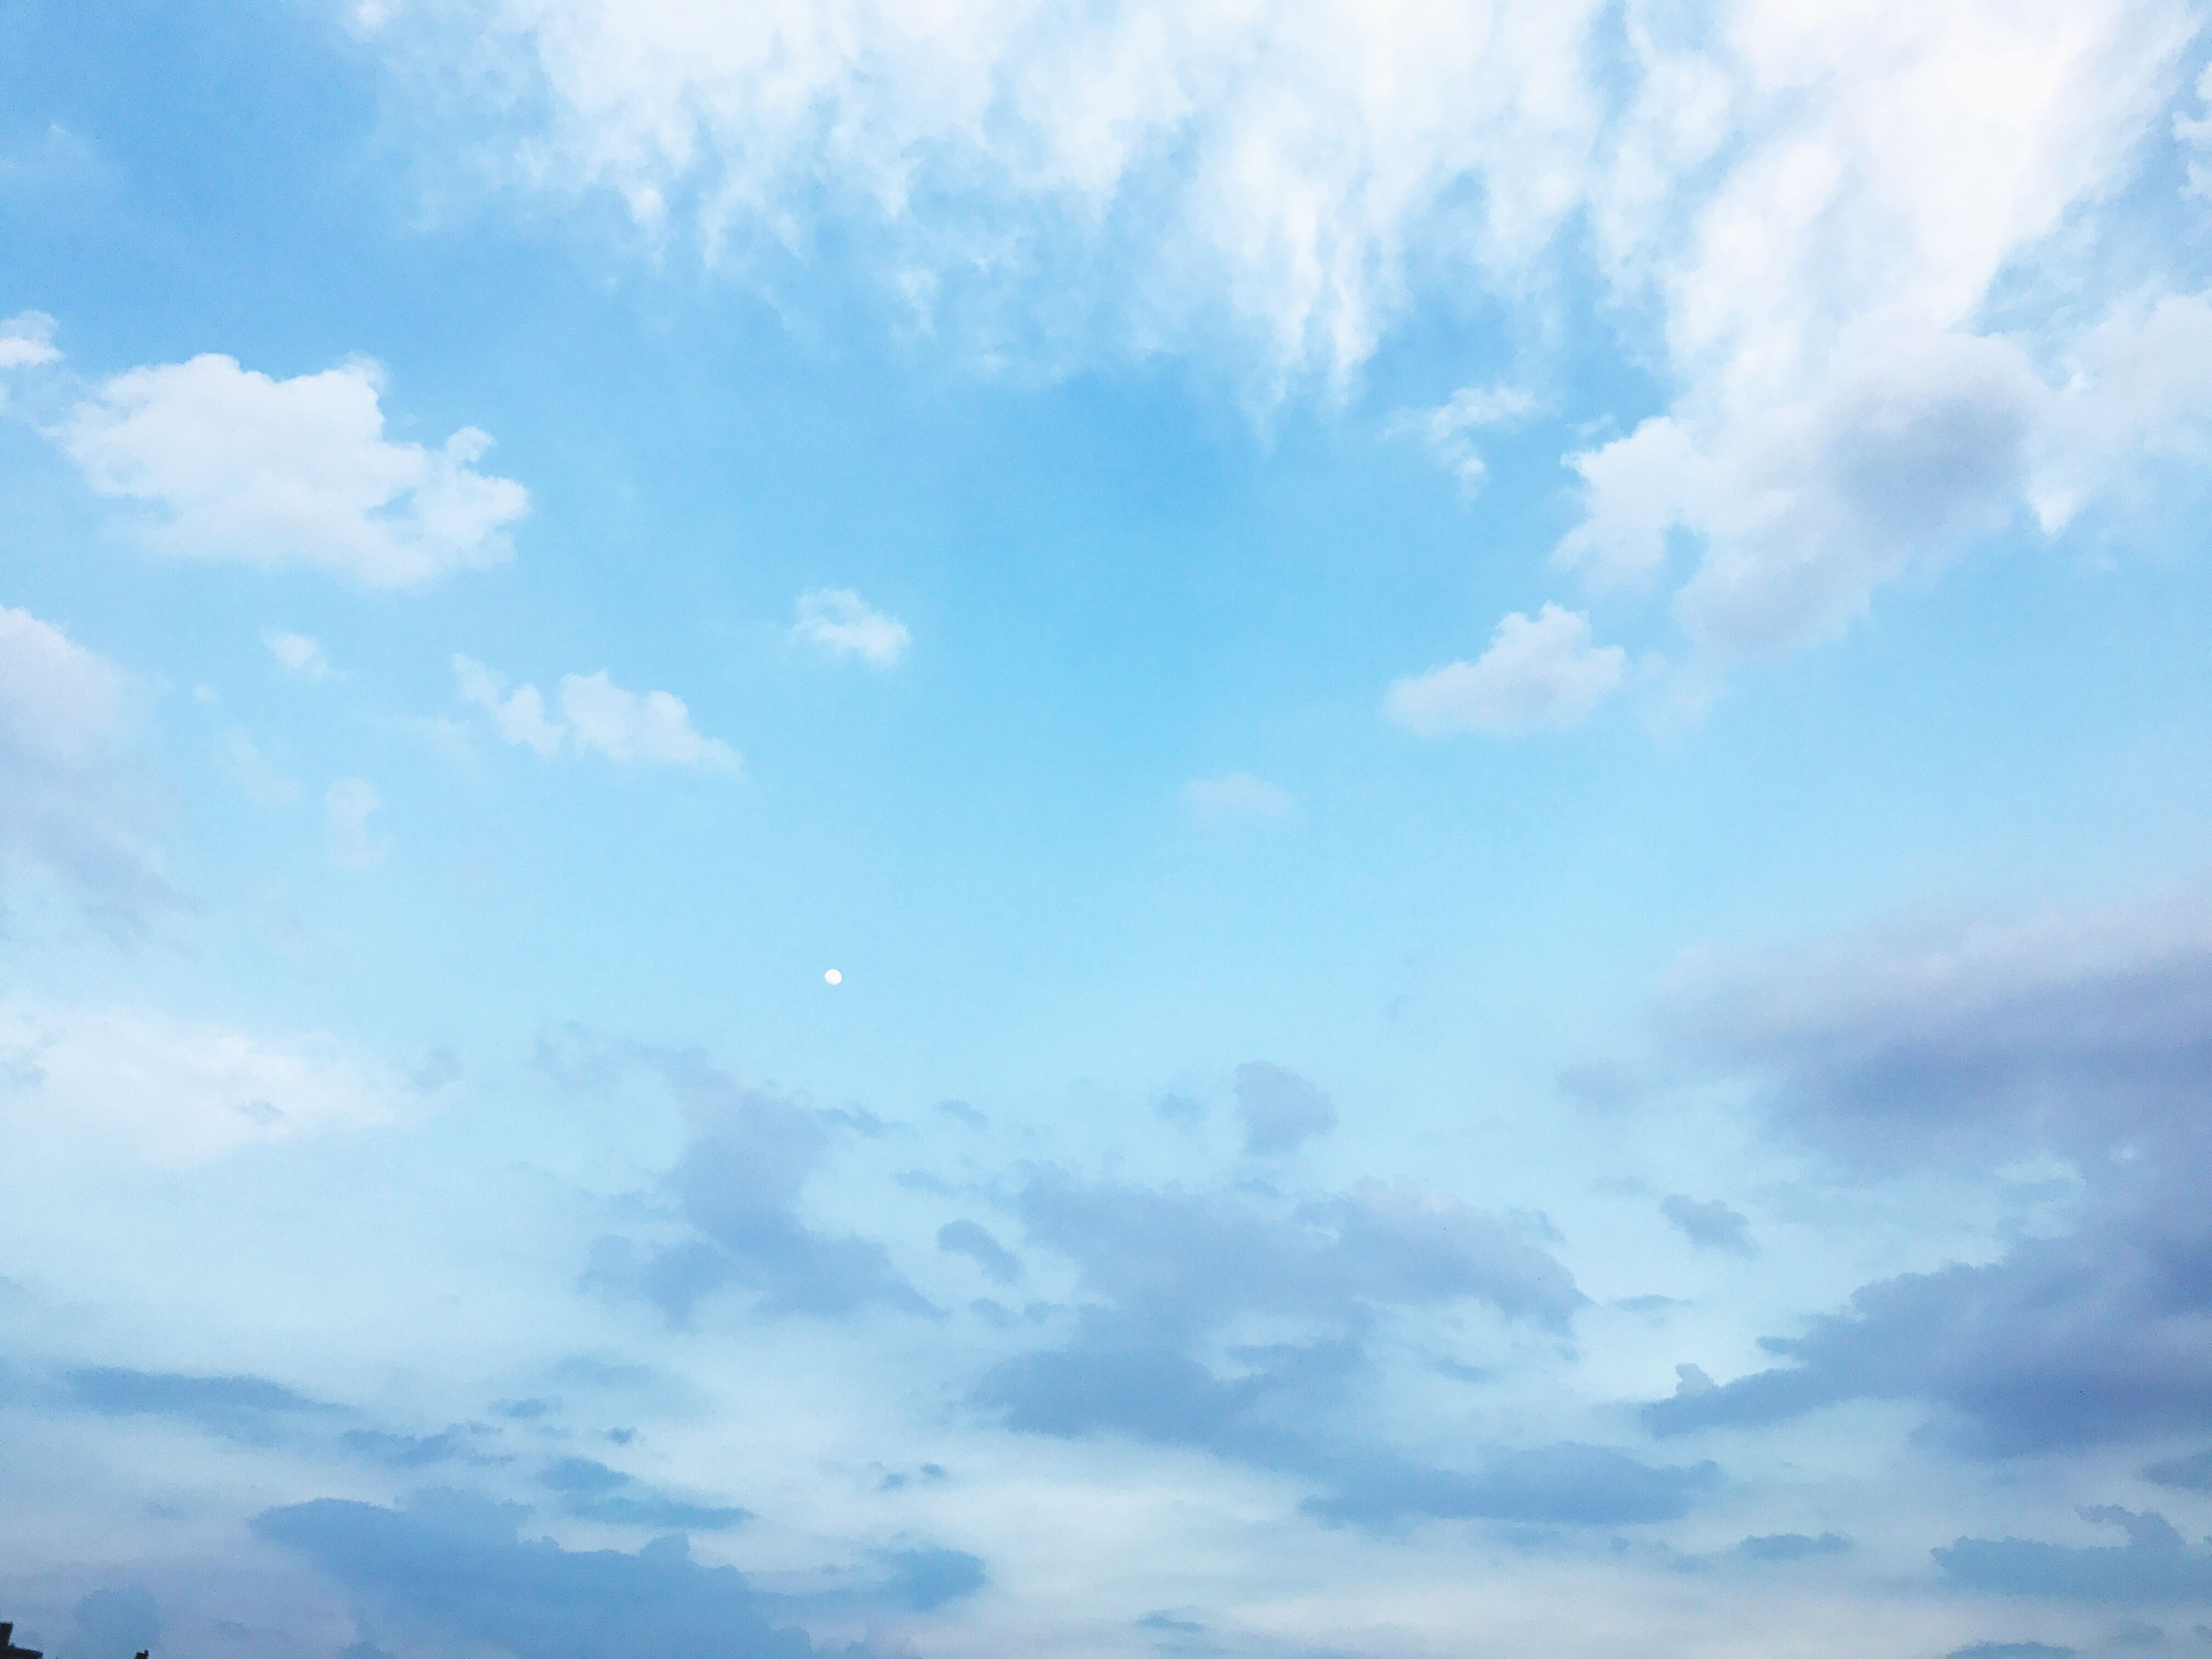 cloud - sky, sky, beauty in nature, nature, low angle view, tranquility, sky only, scenics, day, no people, backgrounds, tranquil scene, outdoors, blue